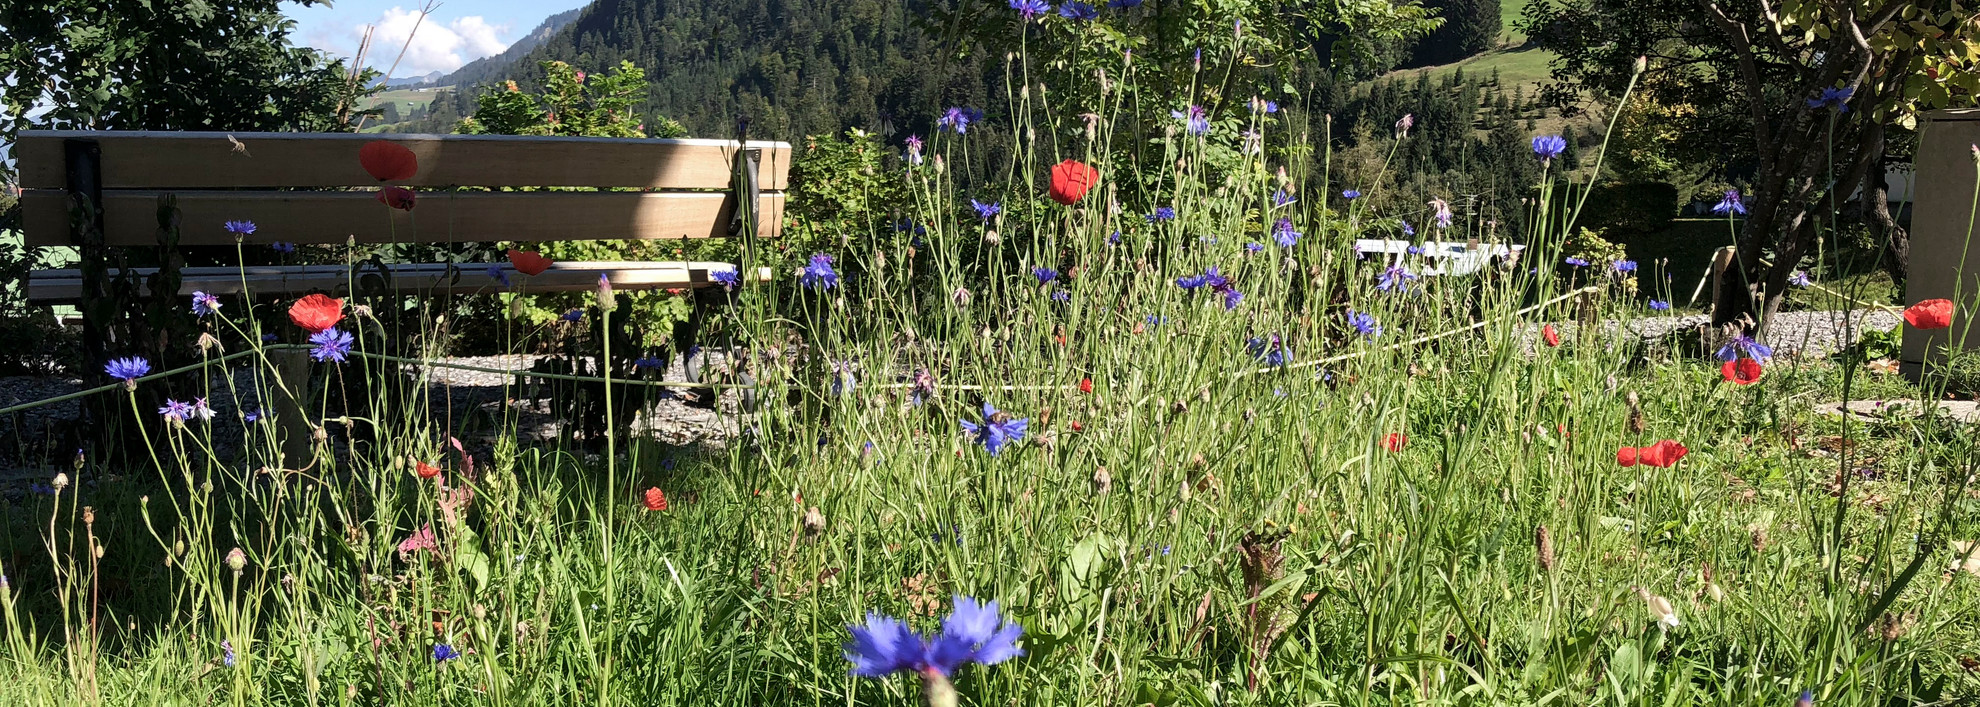 Blooming Garden in September 2018 | © Kleinwalsertal Tourismus eGen | Photographer: Louisa Hieke